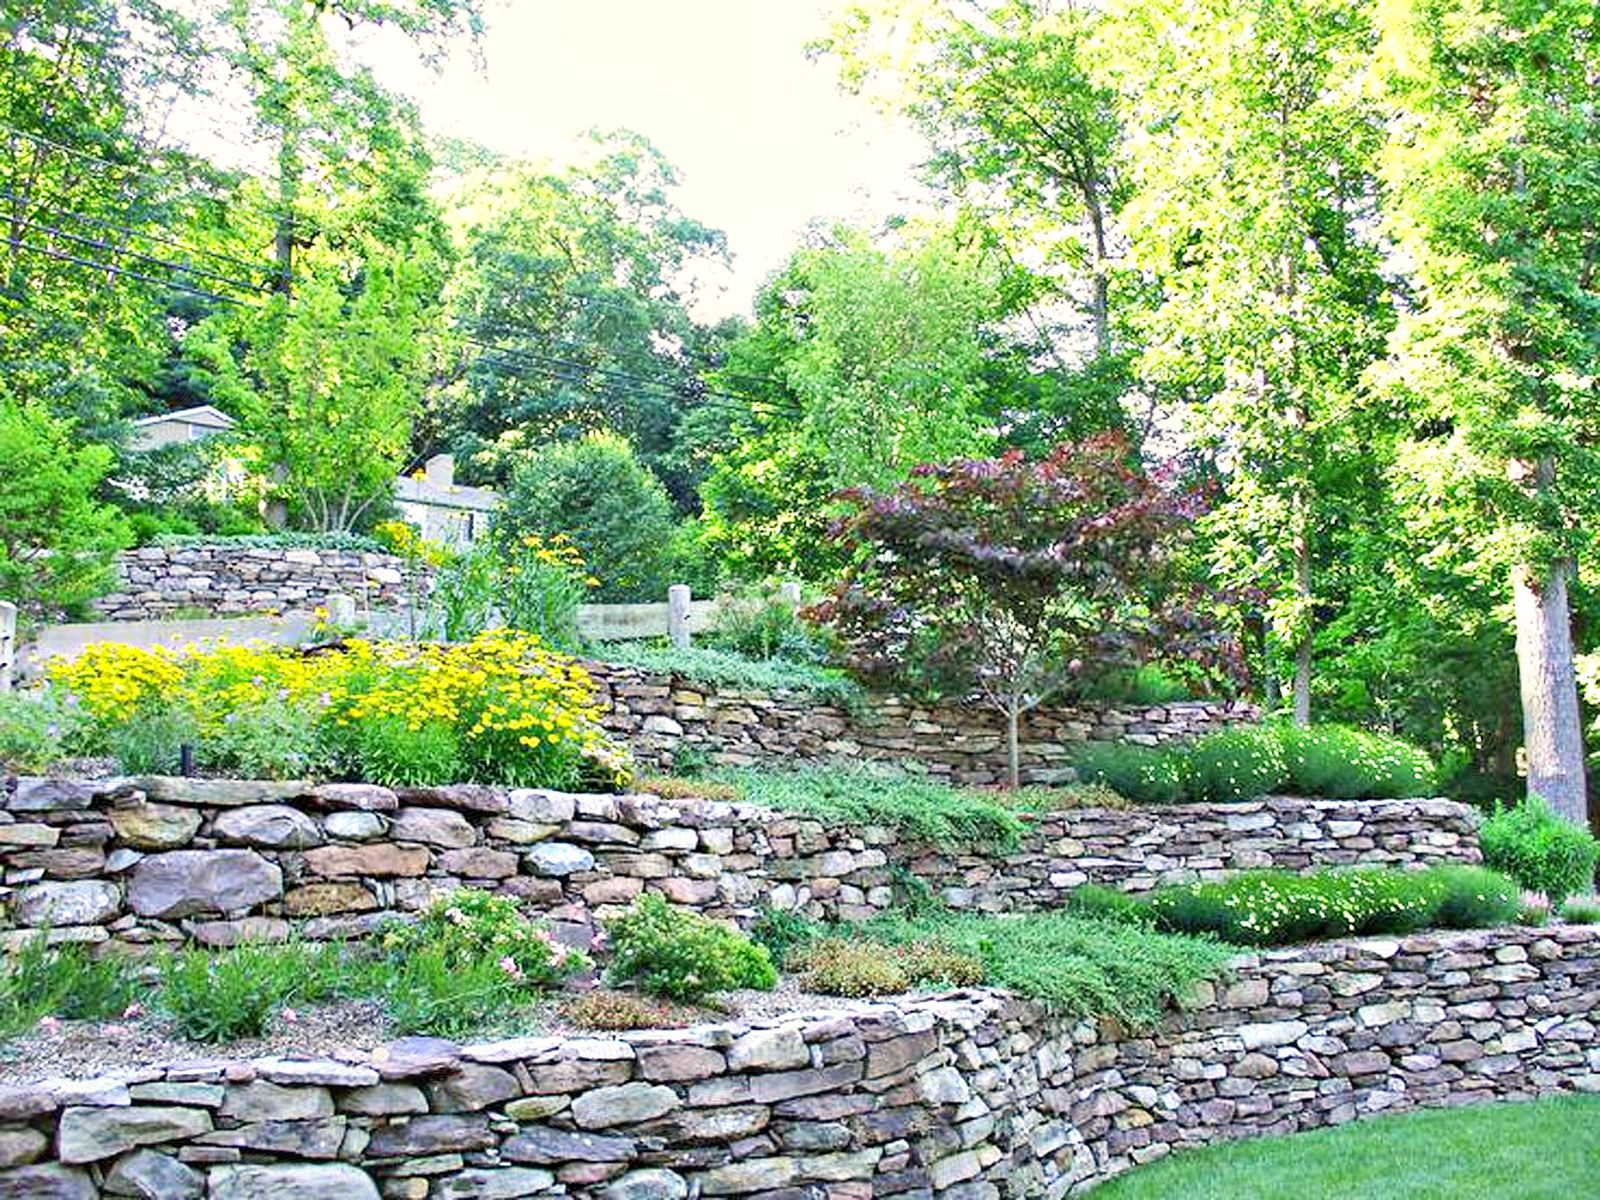 13 Hillside Landscaping Ideas To Maximize Your Yard within 14 Genius Ways How to Craft Landscaping Ideas For Downward Sloping Backyard